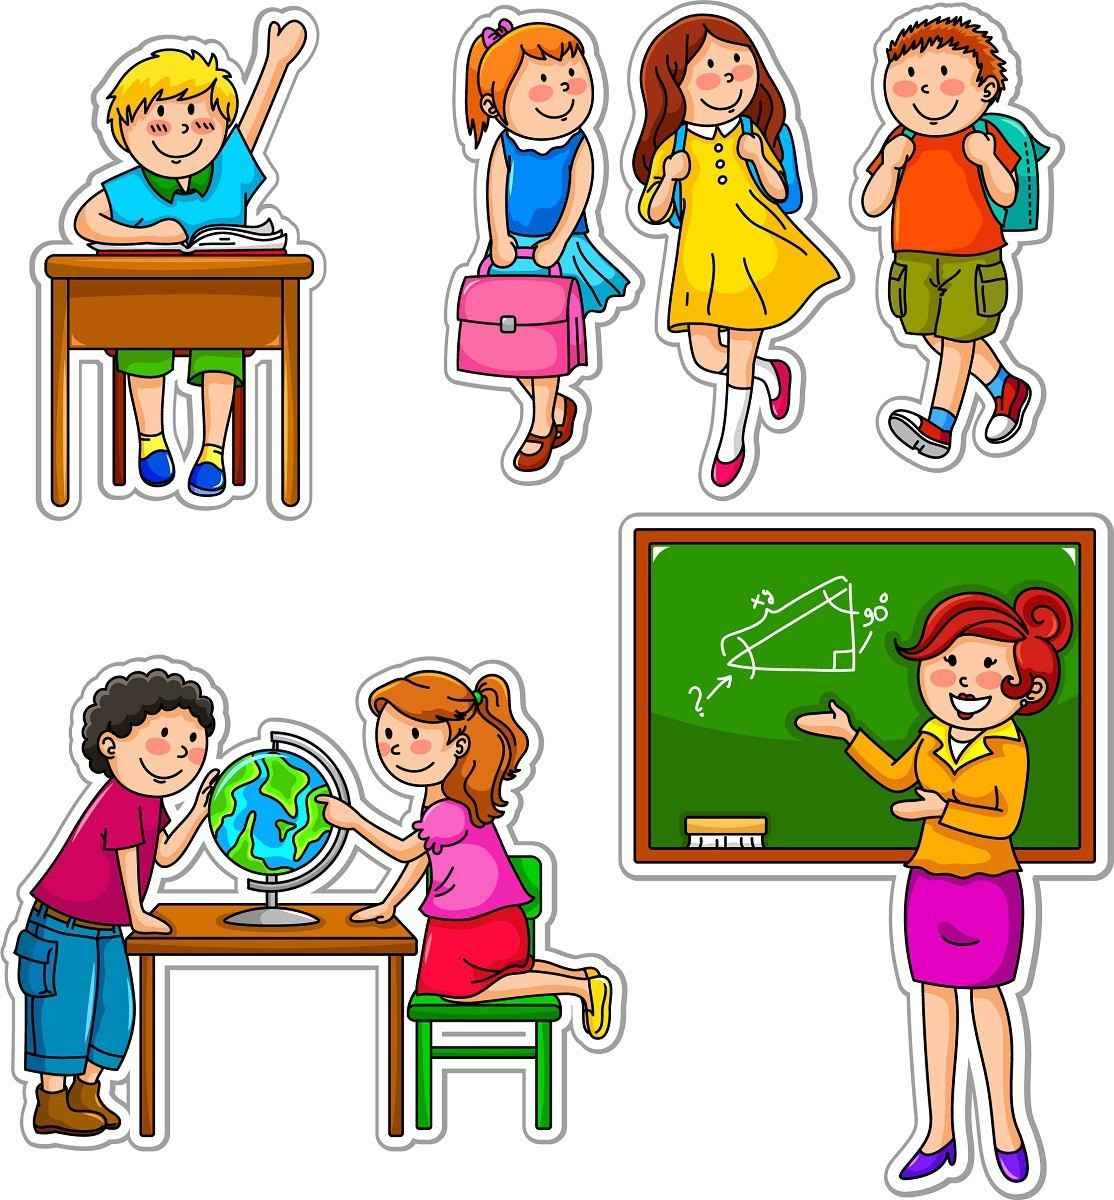 Cartoon Child illustration png